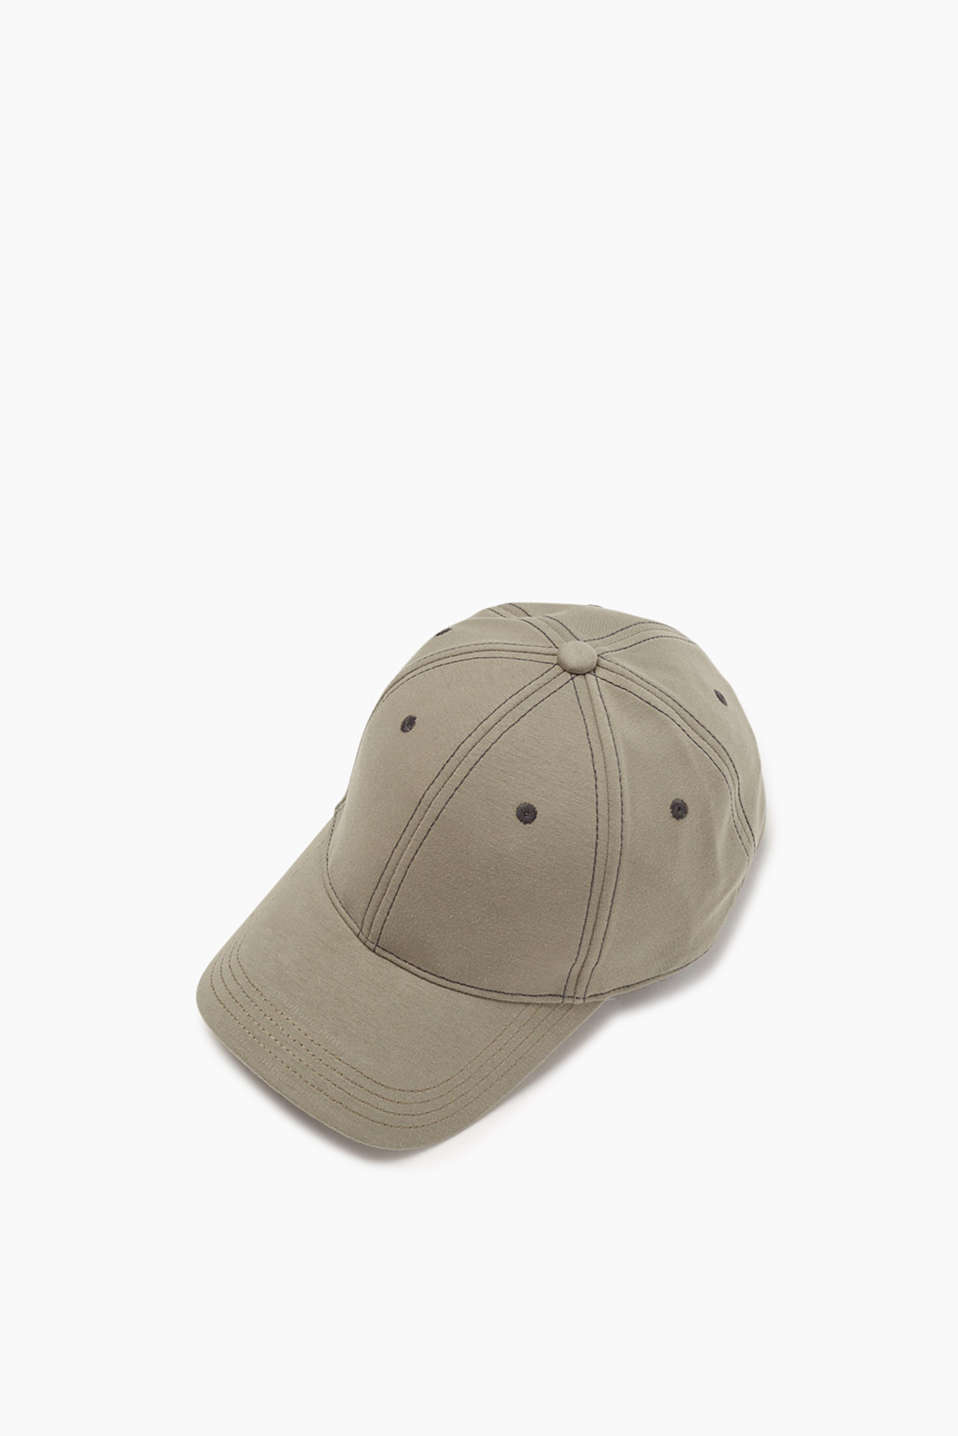 Baseball cap in cotton sweat fabric for your urban look